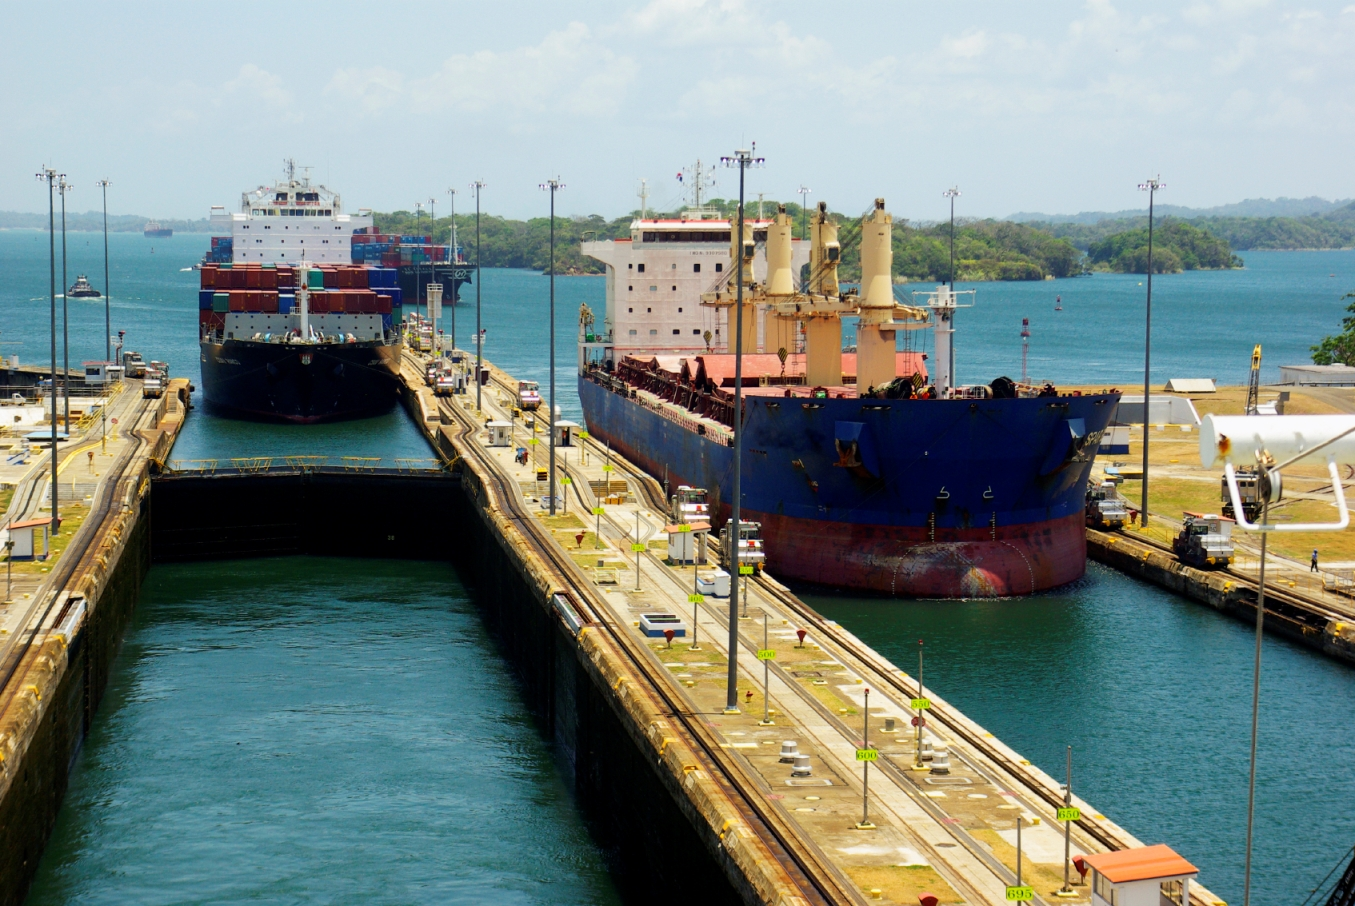 Panama Canal Expansion Will Help Provide a World Market for US Natural ...: www.rapidpower.net/energy-news/2013/02/panama-canal-expansion-will...